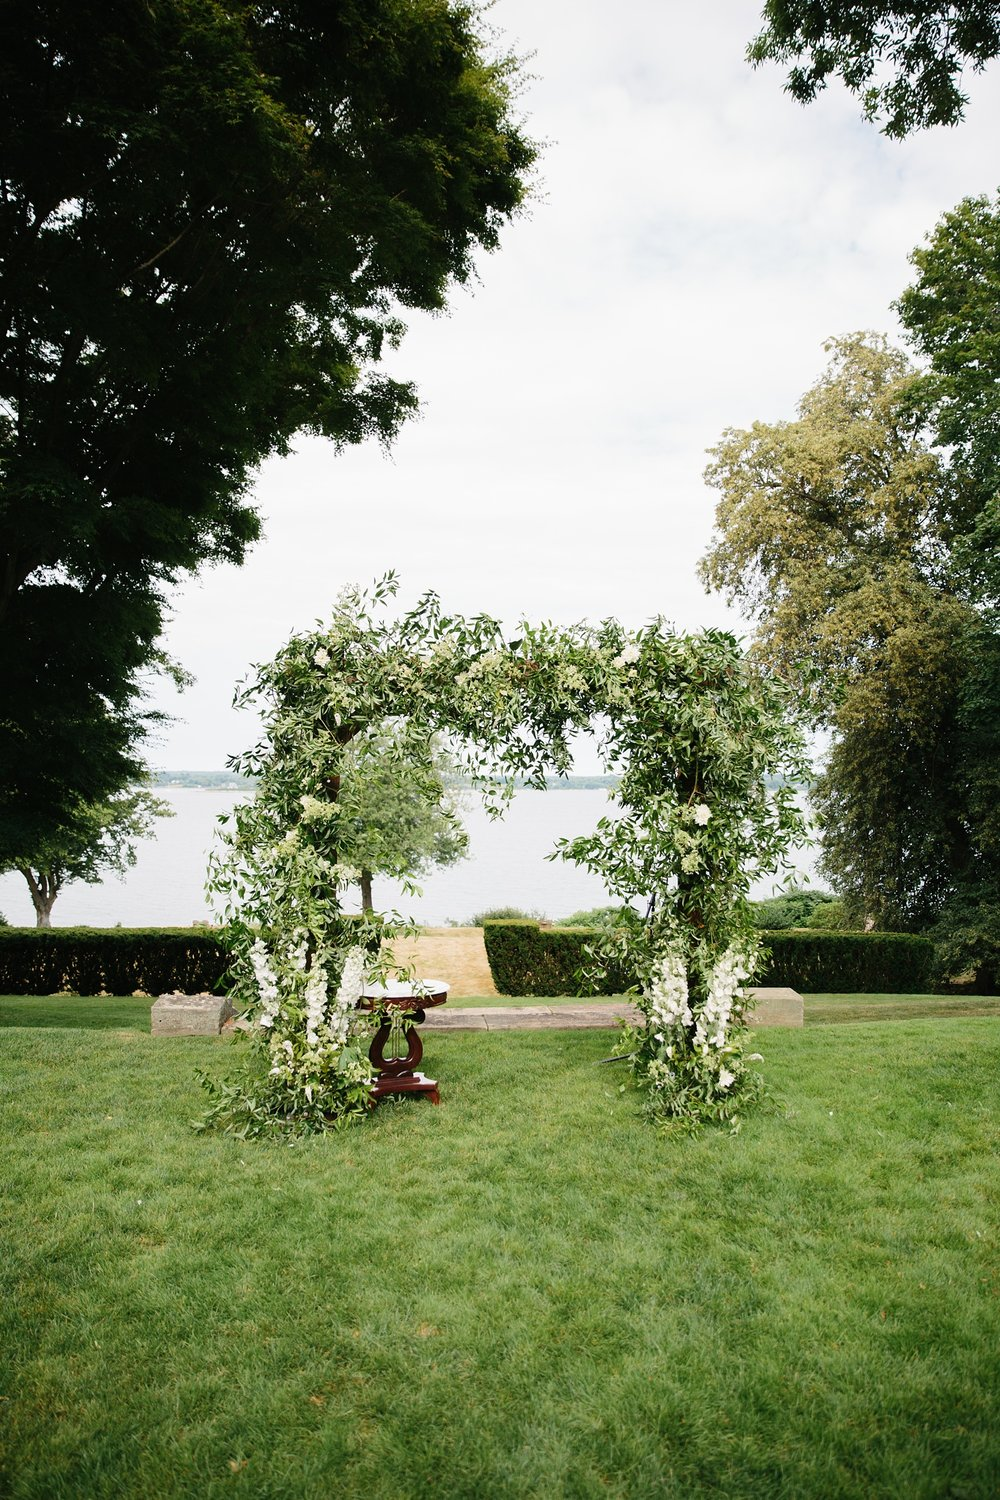 Daniel_Sarah_Glen_Manor_House_Wedding_012.jpeg